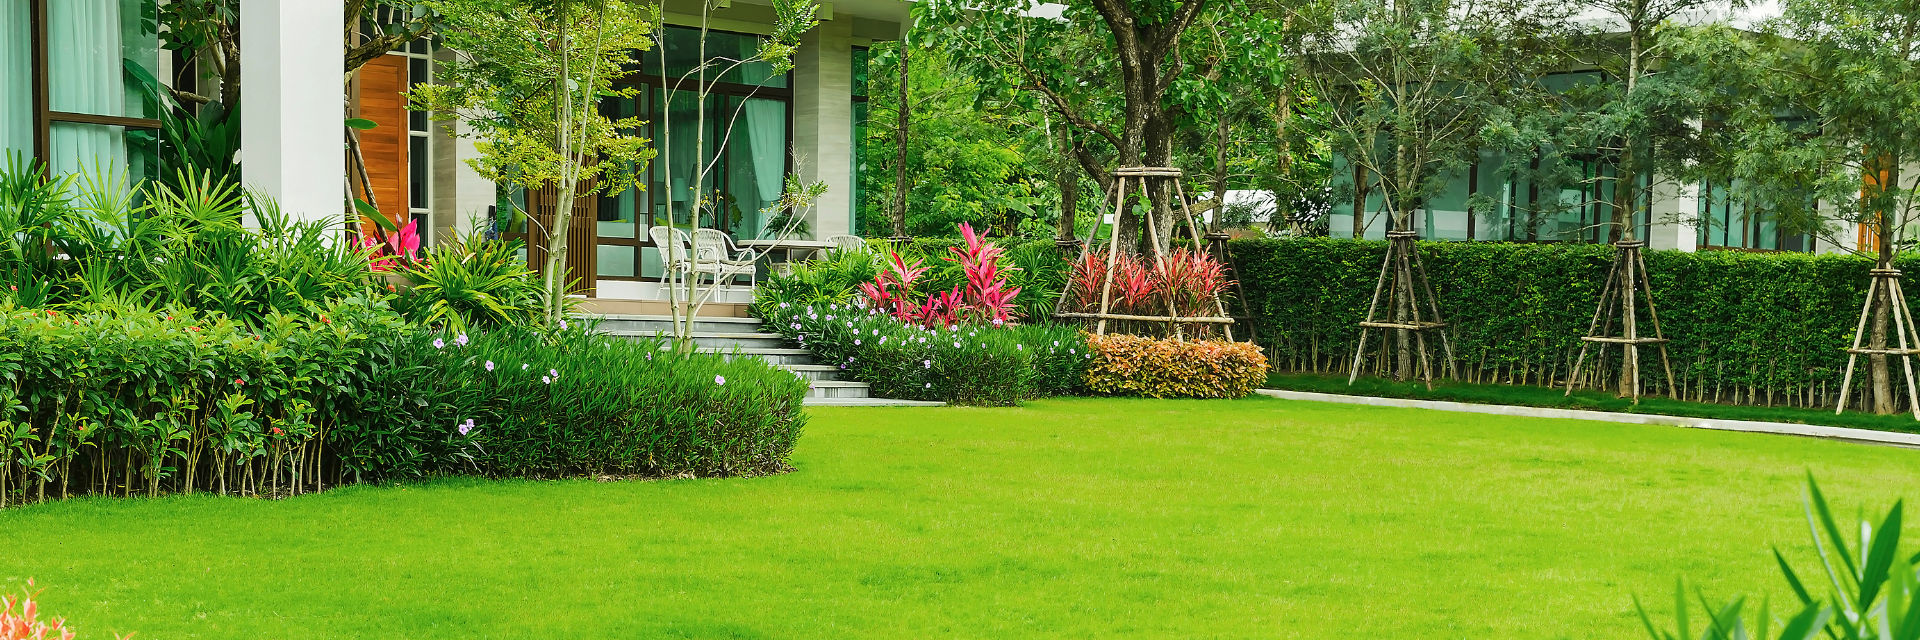 Professionally landscaped backyard with a manicured lawn.